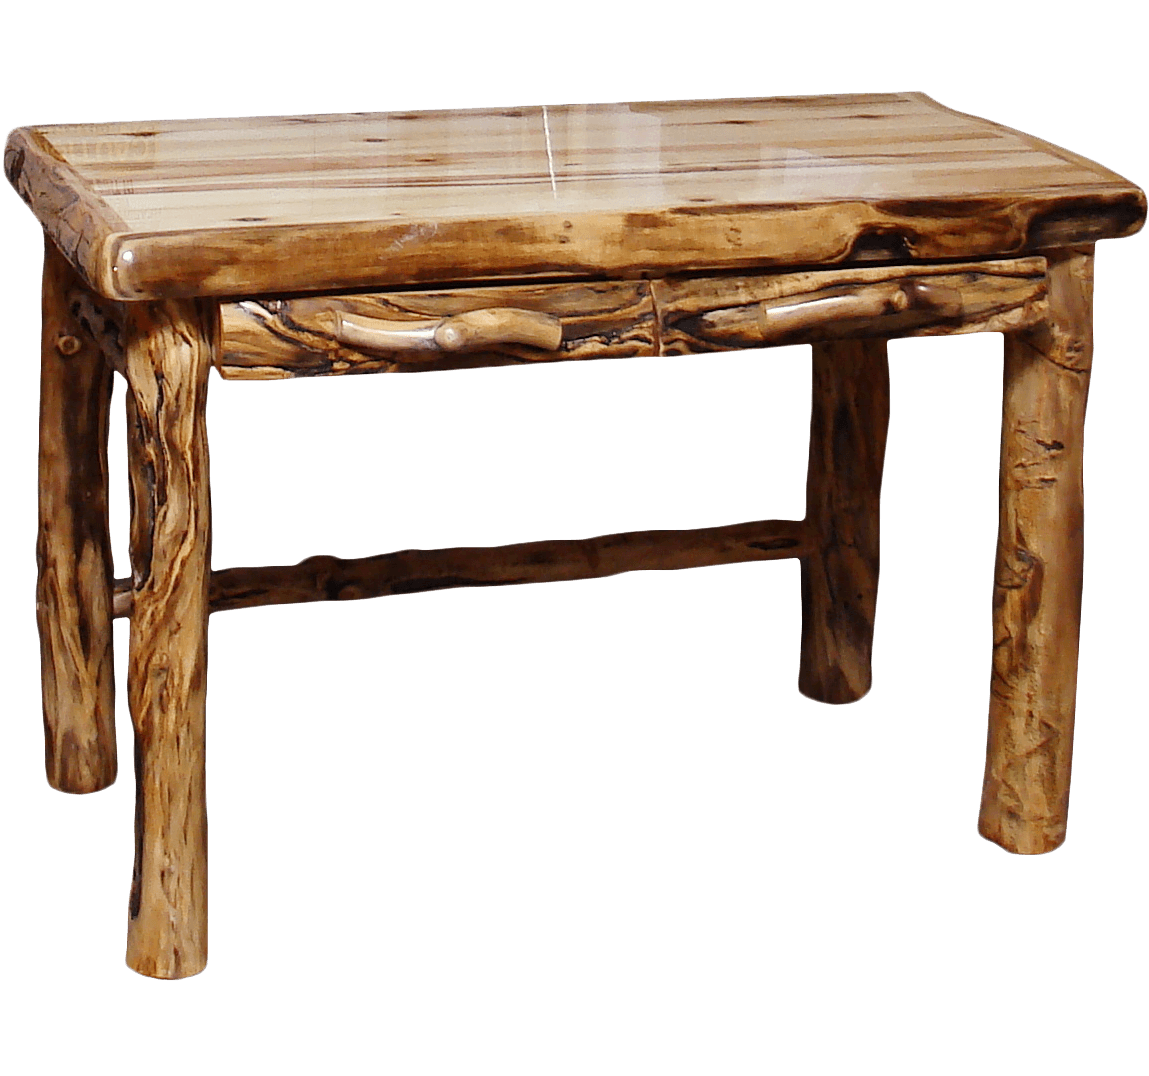 Rustic Log Furniture Of Utah